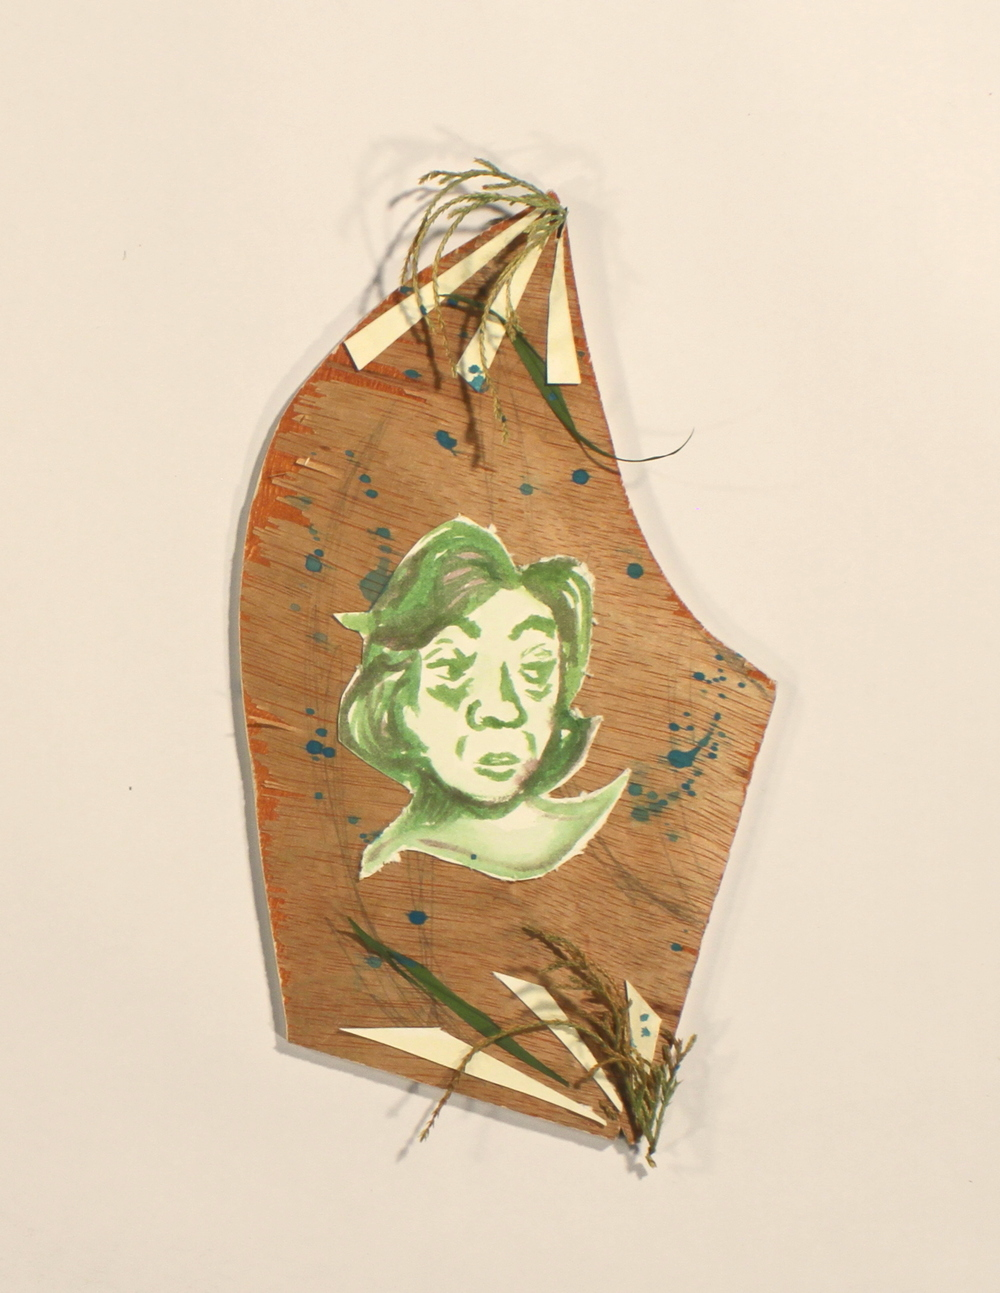 Distain  2014, wood, paper, acrylic, leaves, 11in x 6in